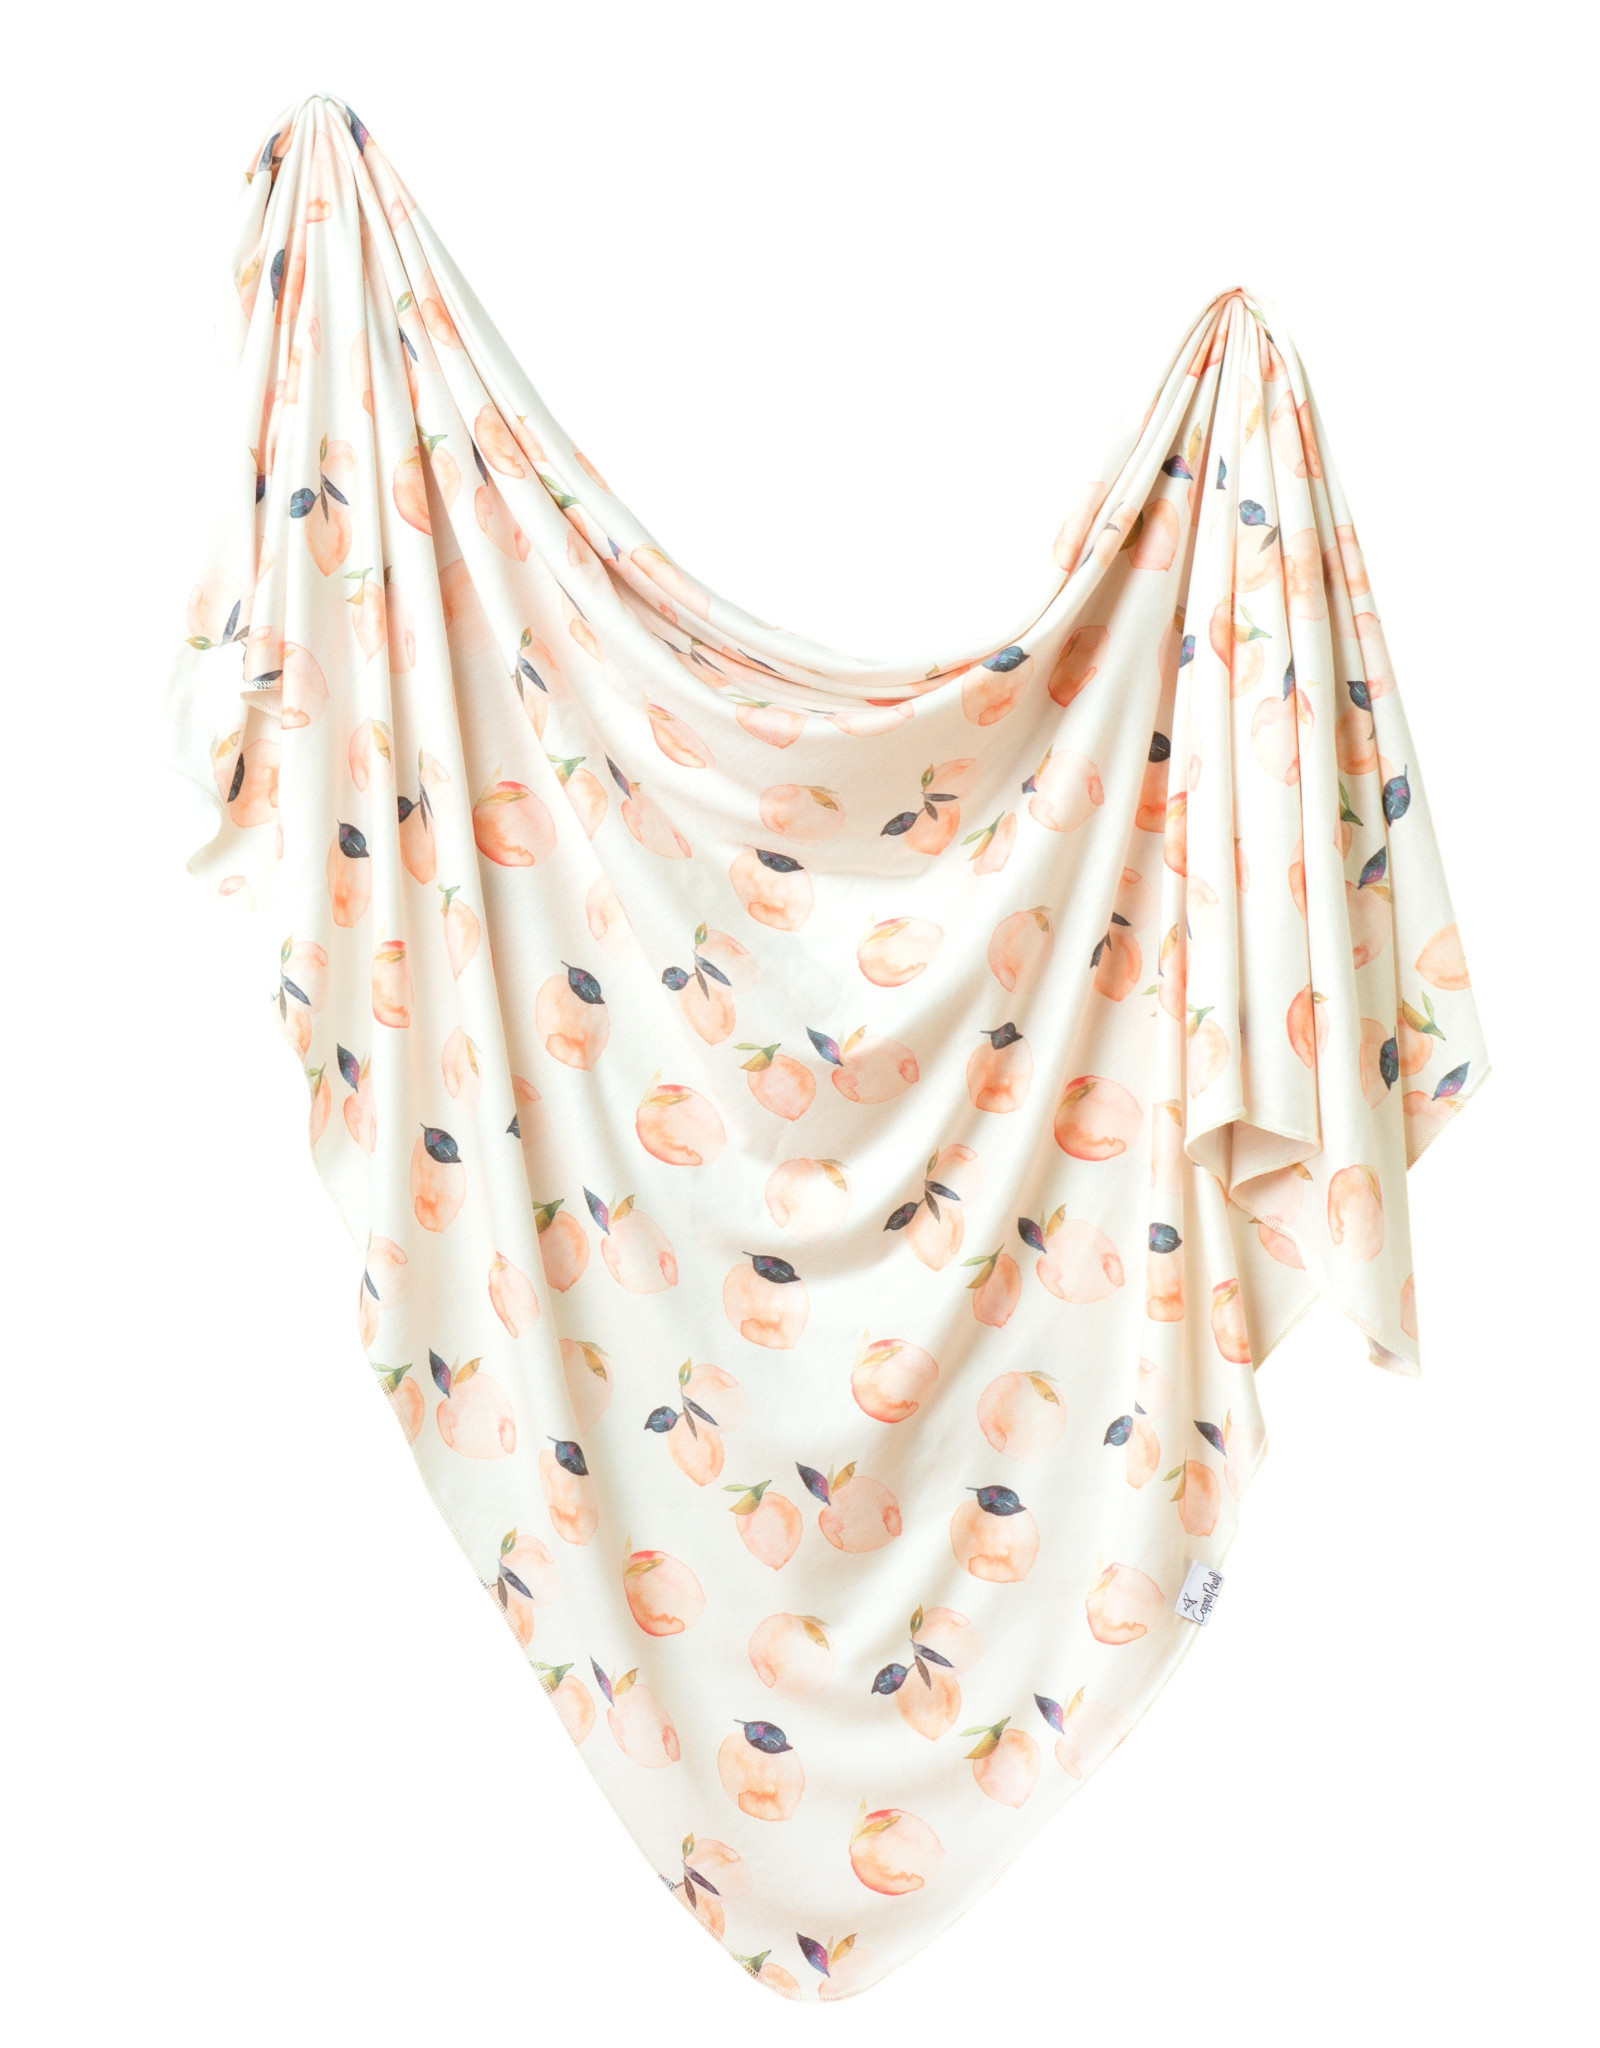 Copper Pearl Swaddle Blanket  Caroline